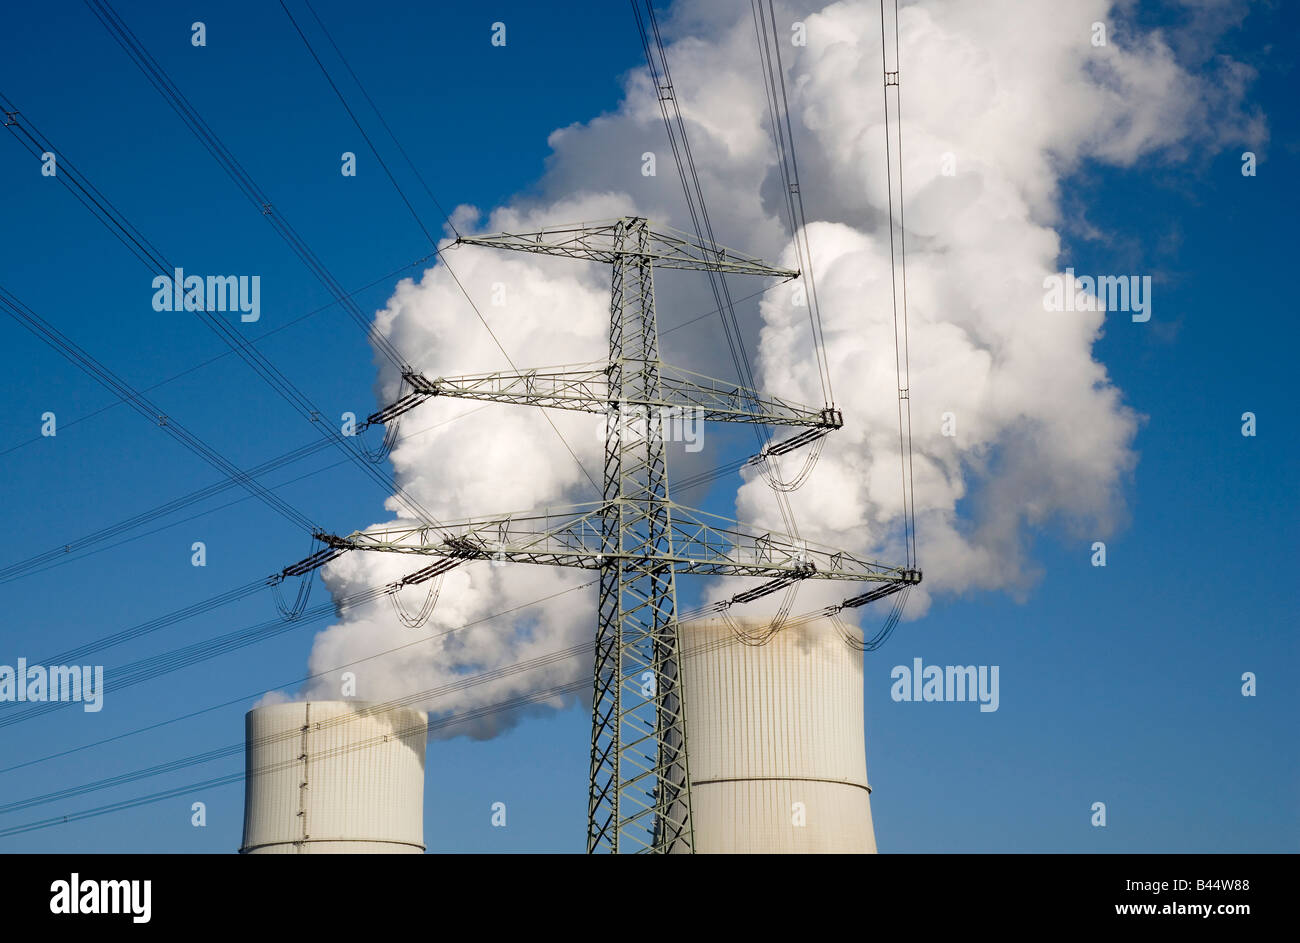 First brown coal power plant in the worldwith carbon dioxide separation via CCS technology Carbon Capture and Storage - Stock Image